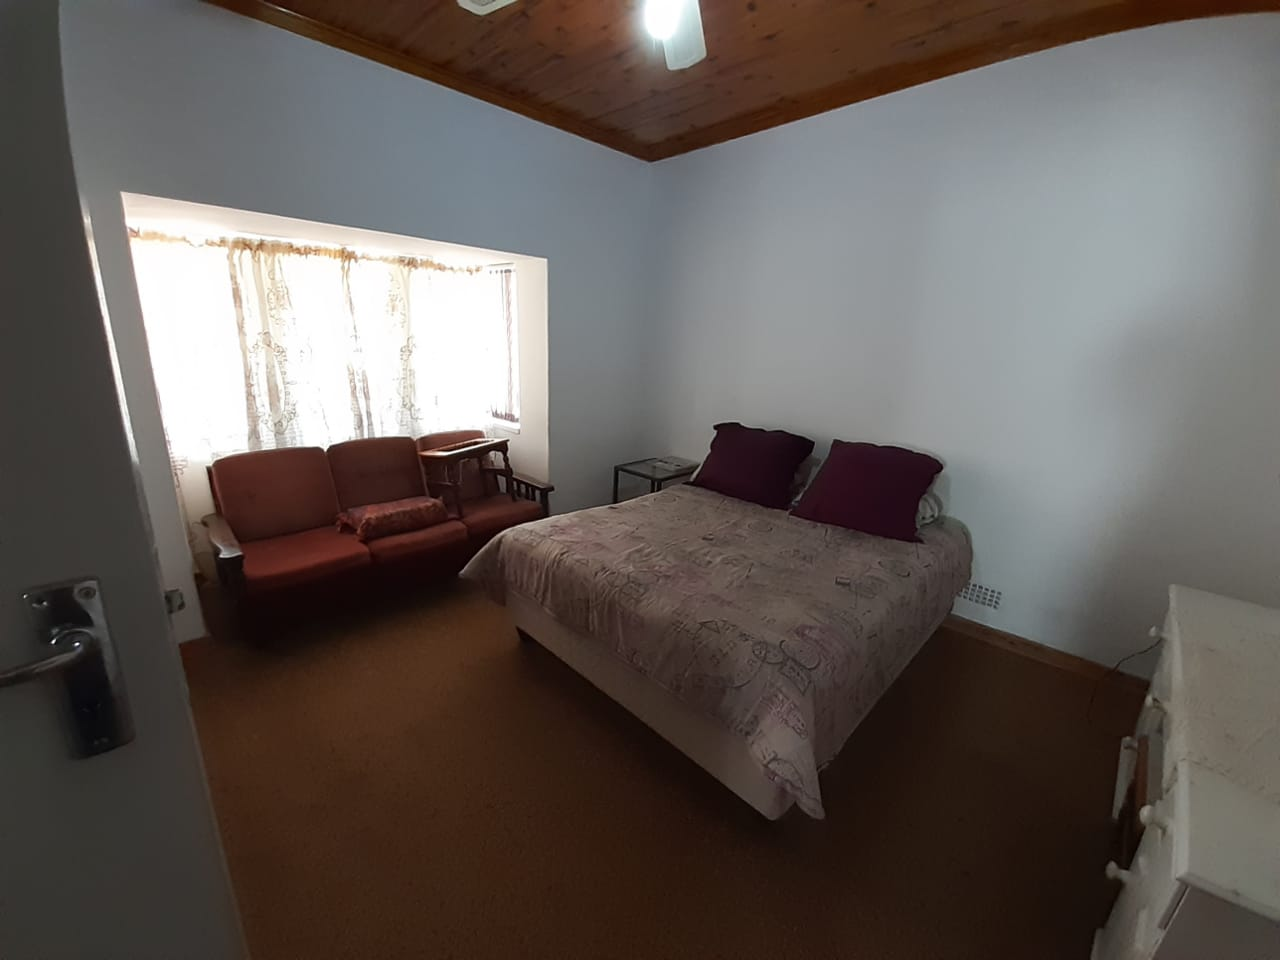 House in Parys - WhatsApp Image 2021-07-15 at 14.04.00.jpeg